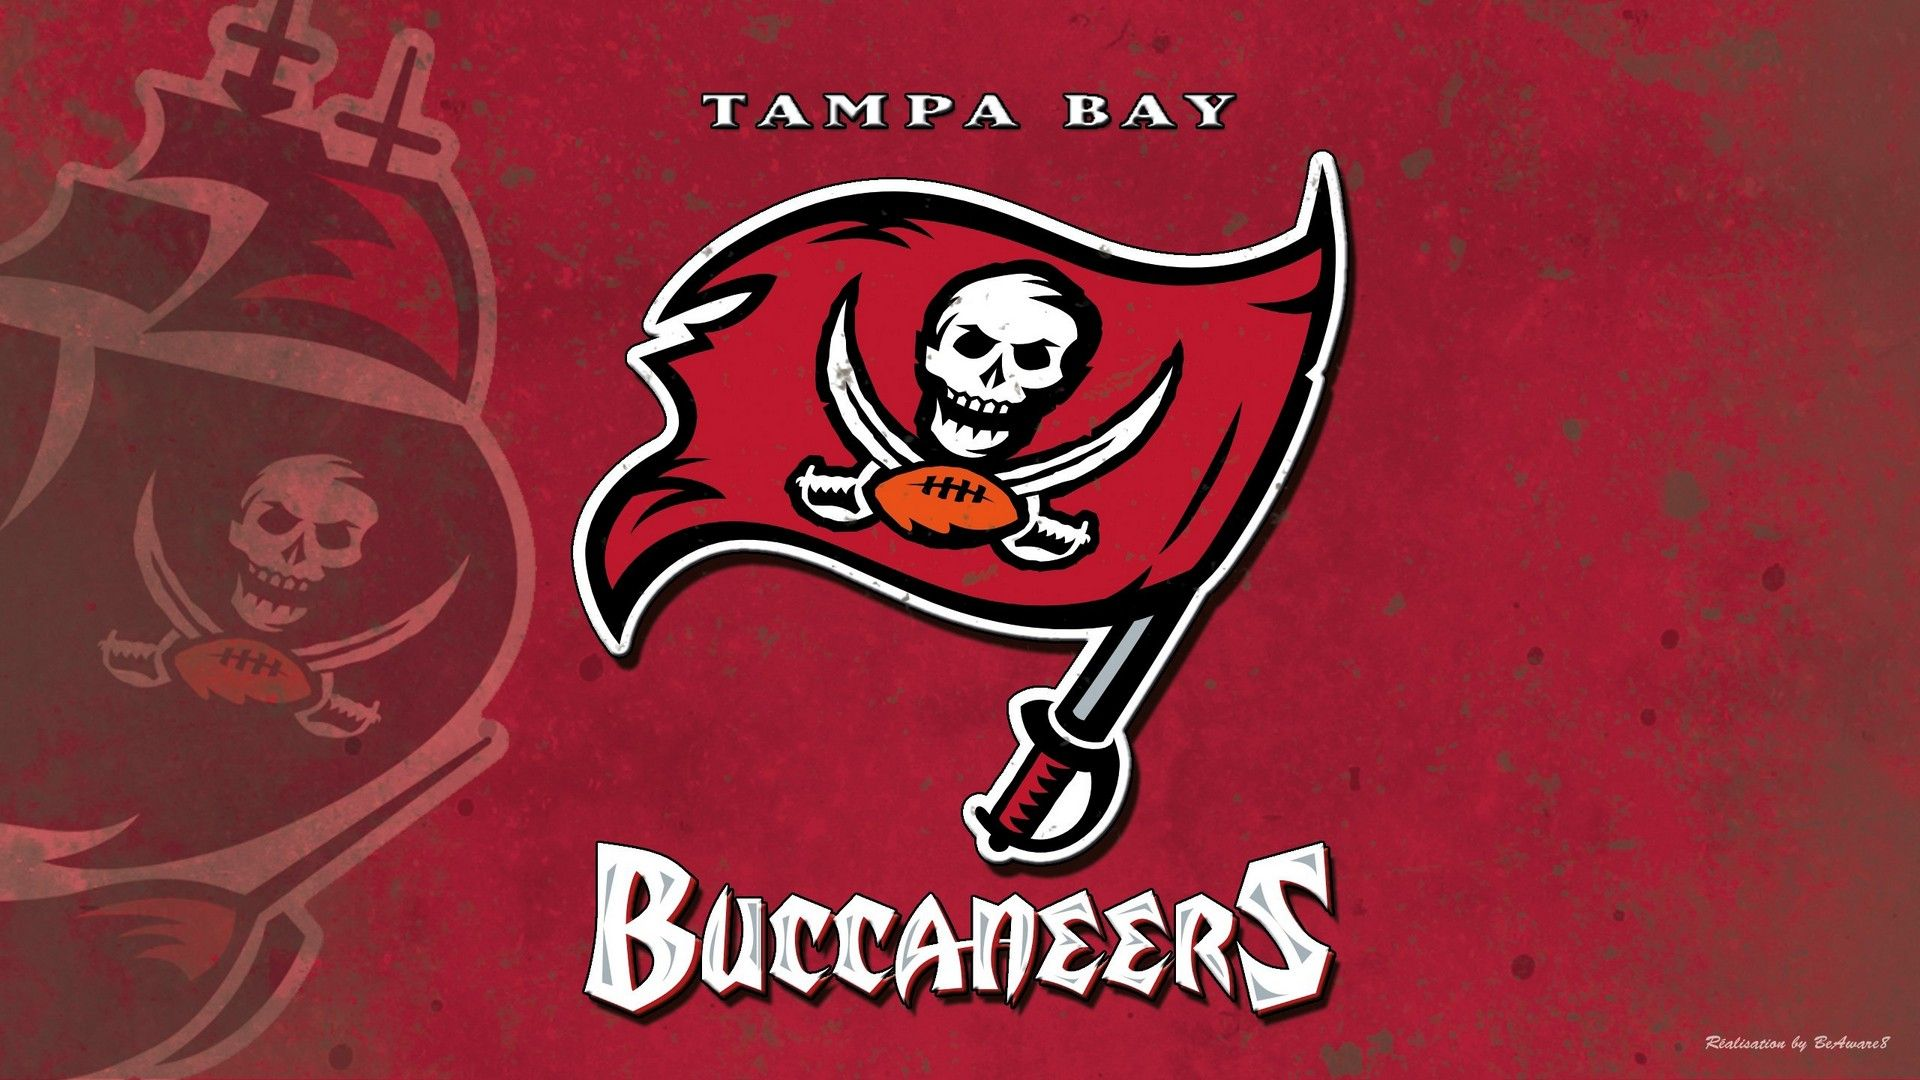 hd tampa bay buccaneers backgrounds 2020 nfl football wallpapers tampa bay buccaneers nfl football wallpaper buccaneers hd tampa bay buccaneers backgrounds